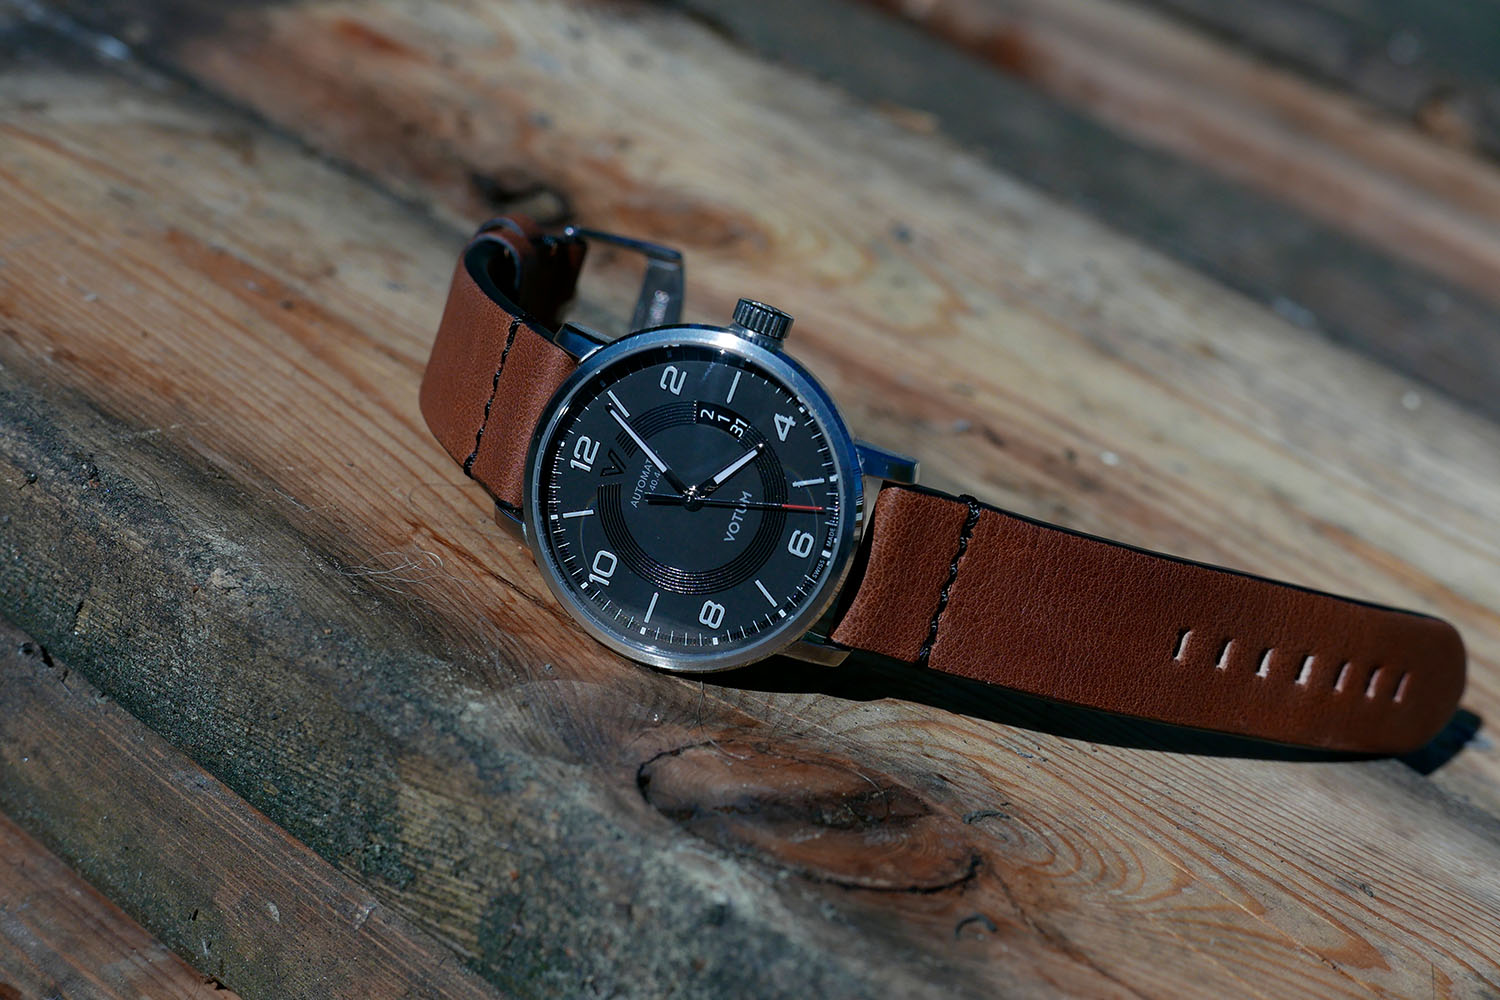 Votum Watches | The Revival Of A Classic Swiss Watch Brand